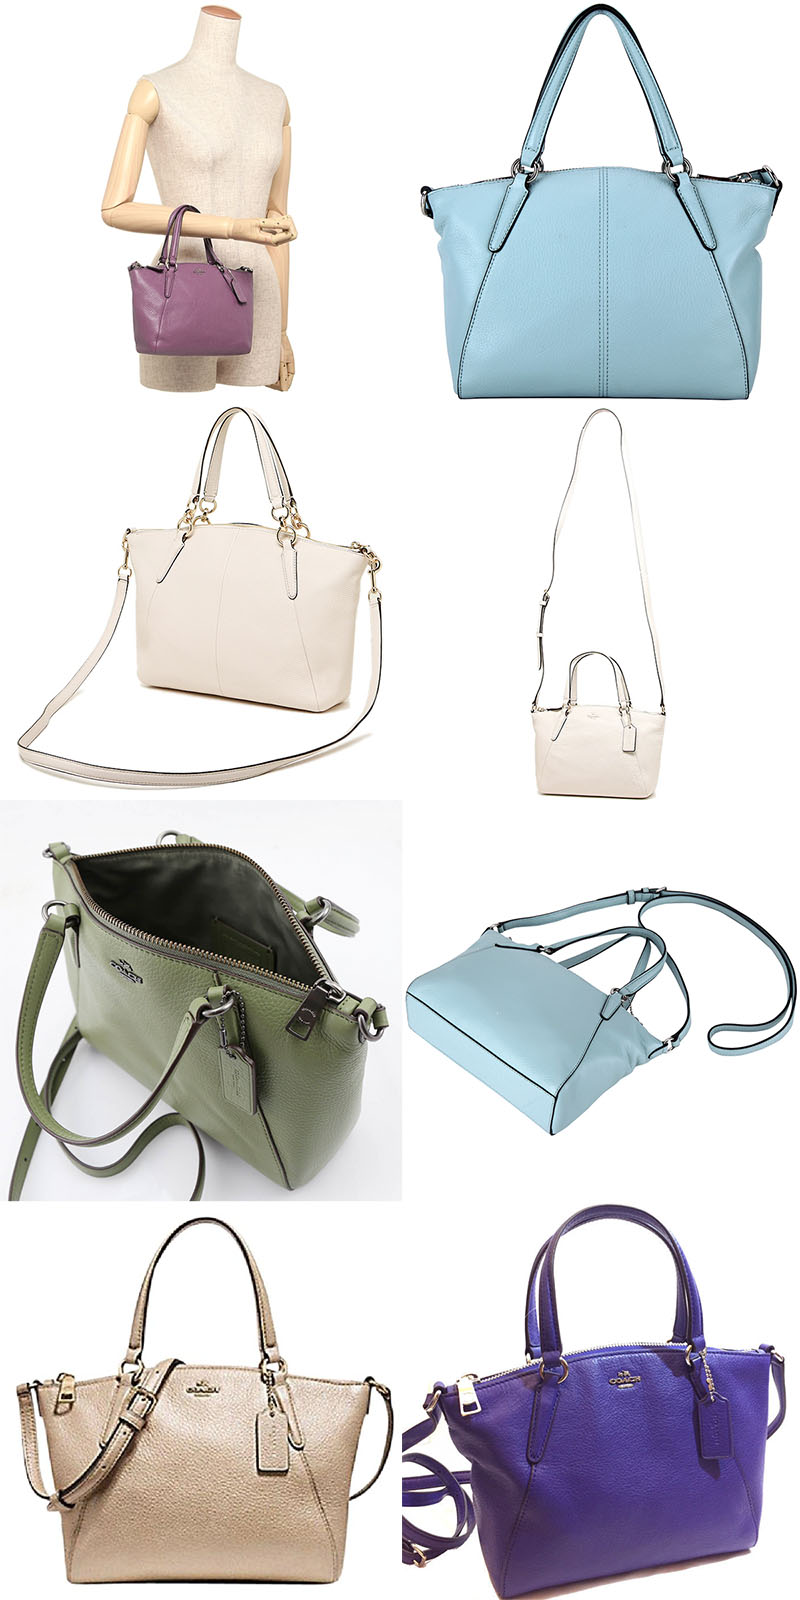 dbbd005f7276 100% authentic. Limited stock. Fast grab. Outlet items do not have dust bag  or paper bag. Tag and care card are included.